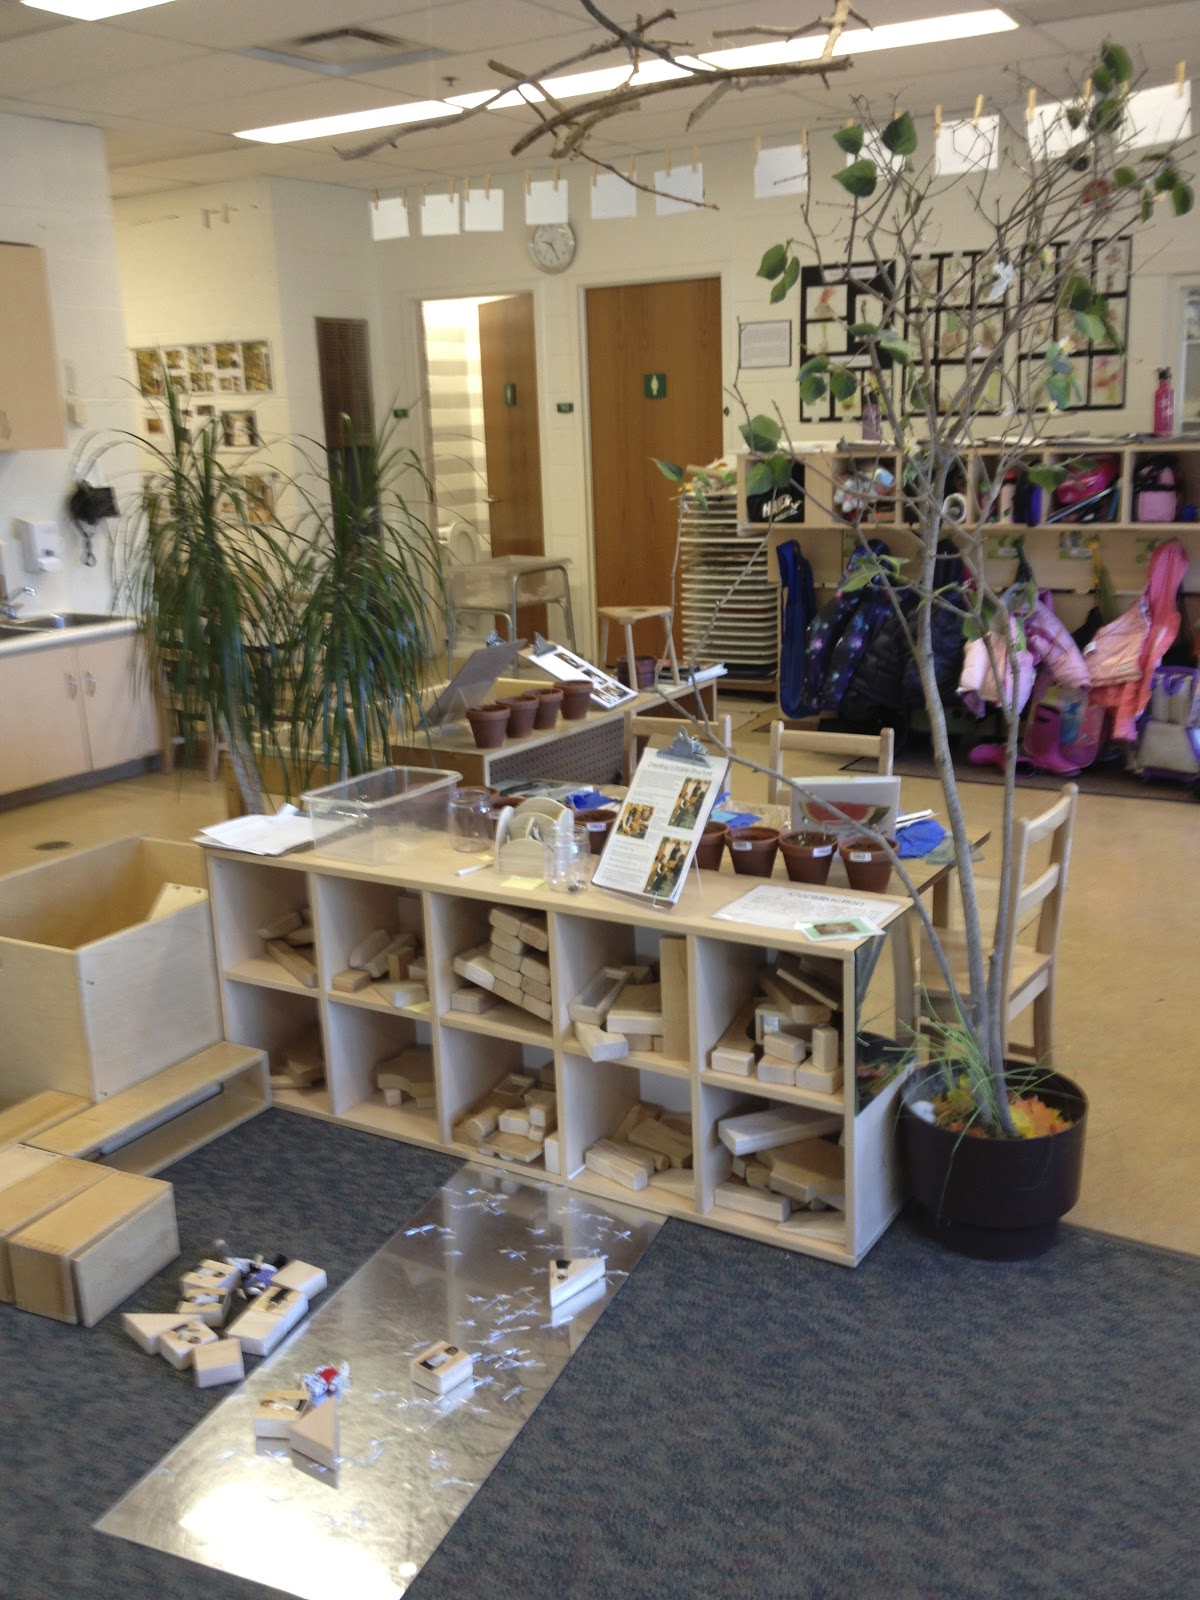 Collaborative Math Classroom ~ Transforming our learning environment into a space of